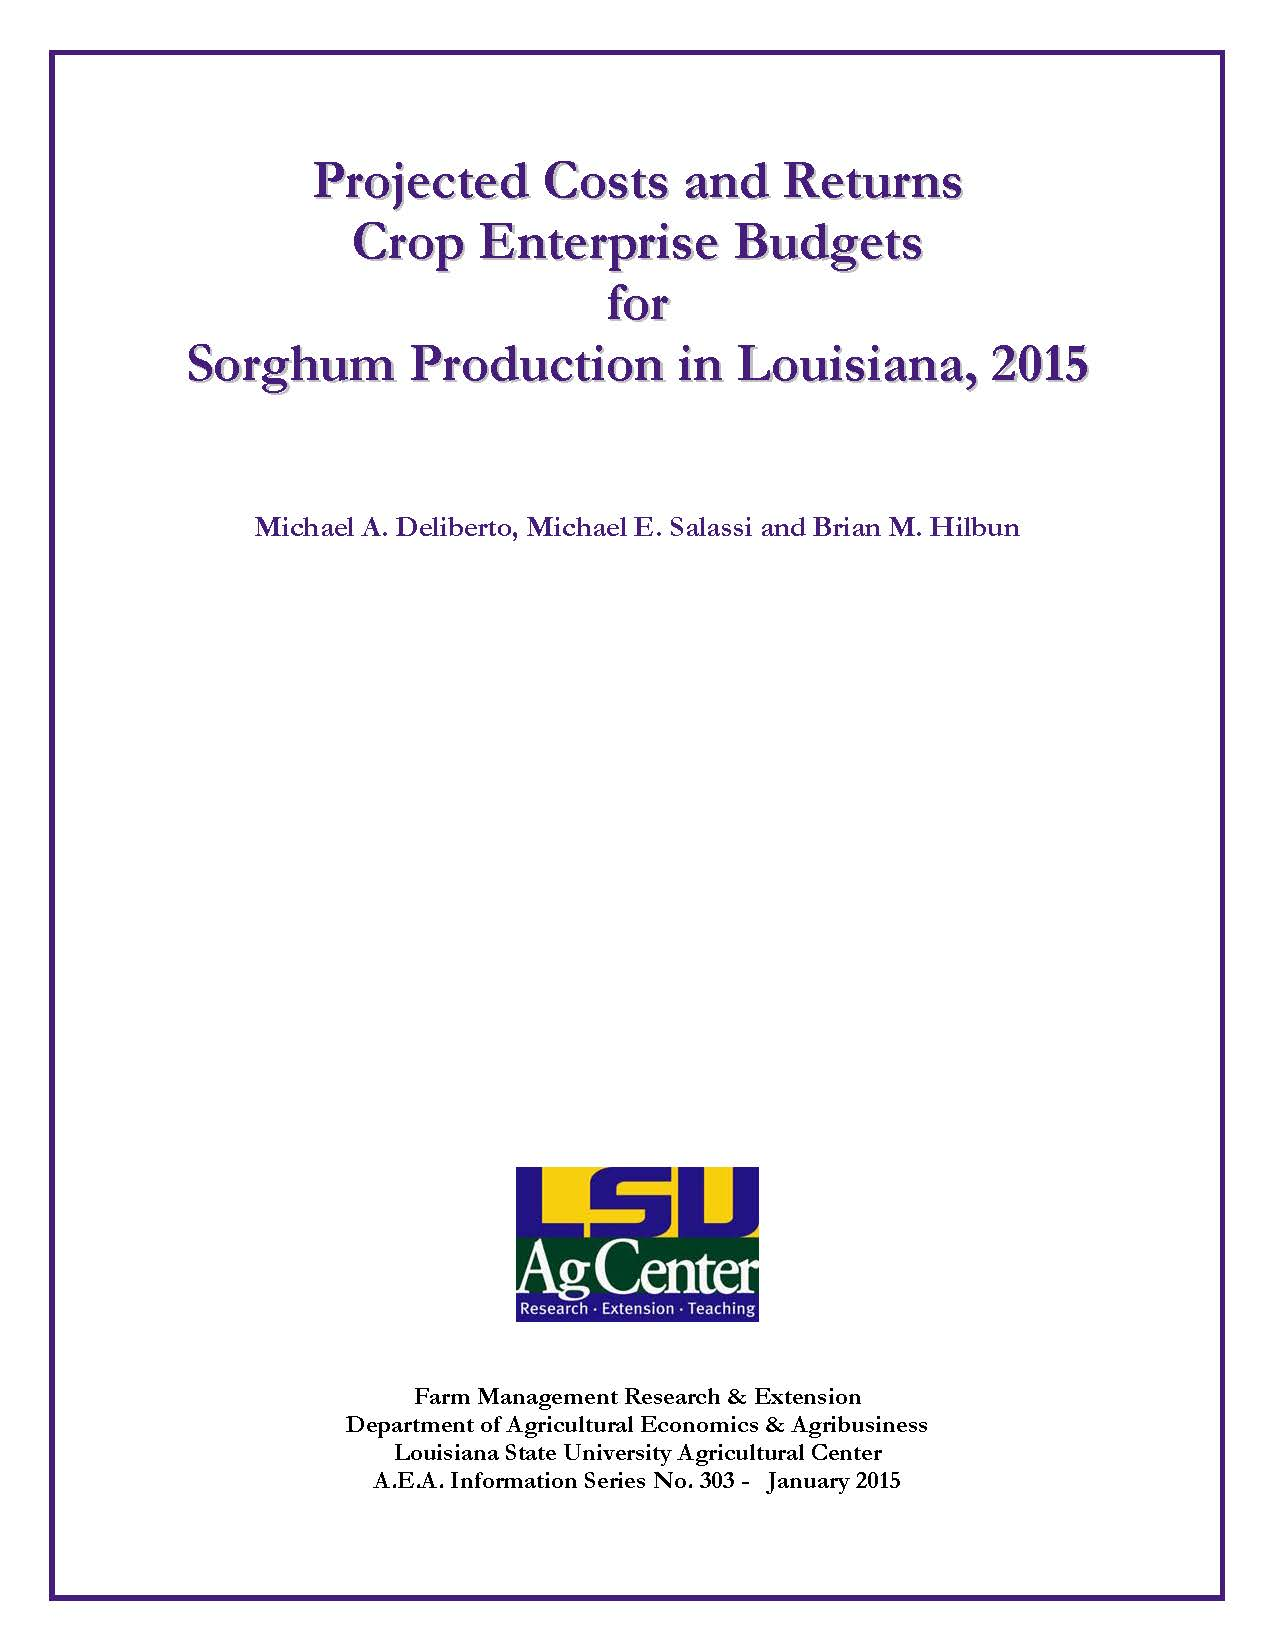 Projected Costs and Returns Crop Enterprise Budgets for Sorghum Production in Louisiana 2015